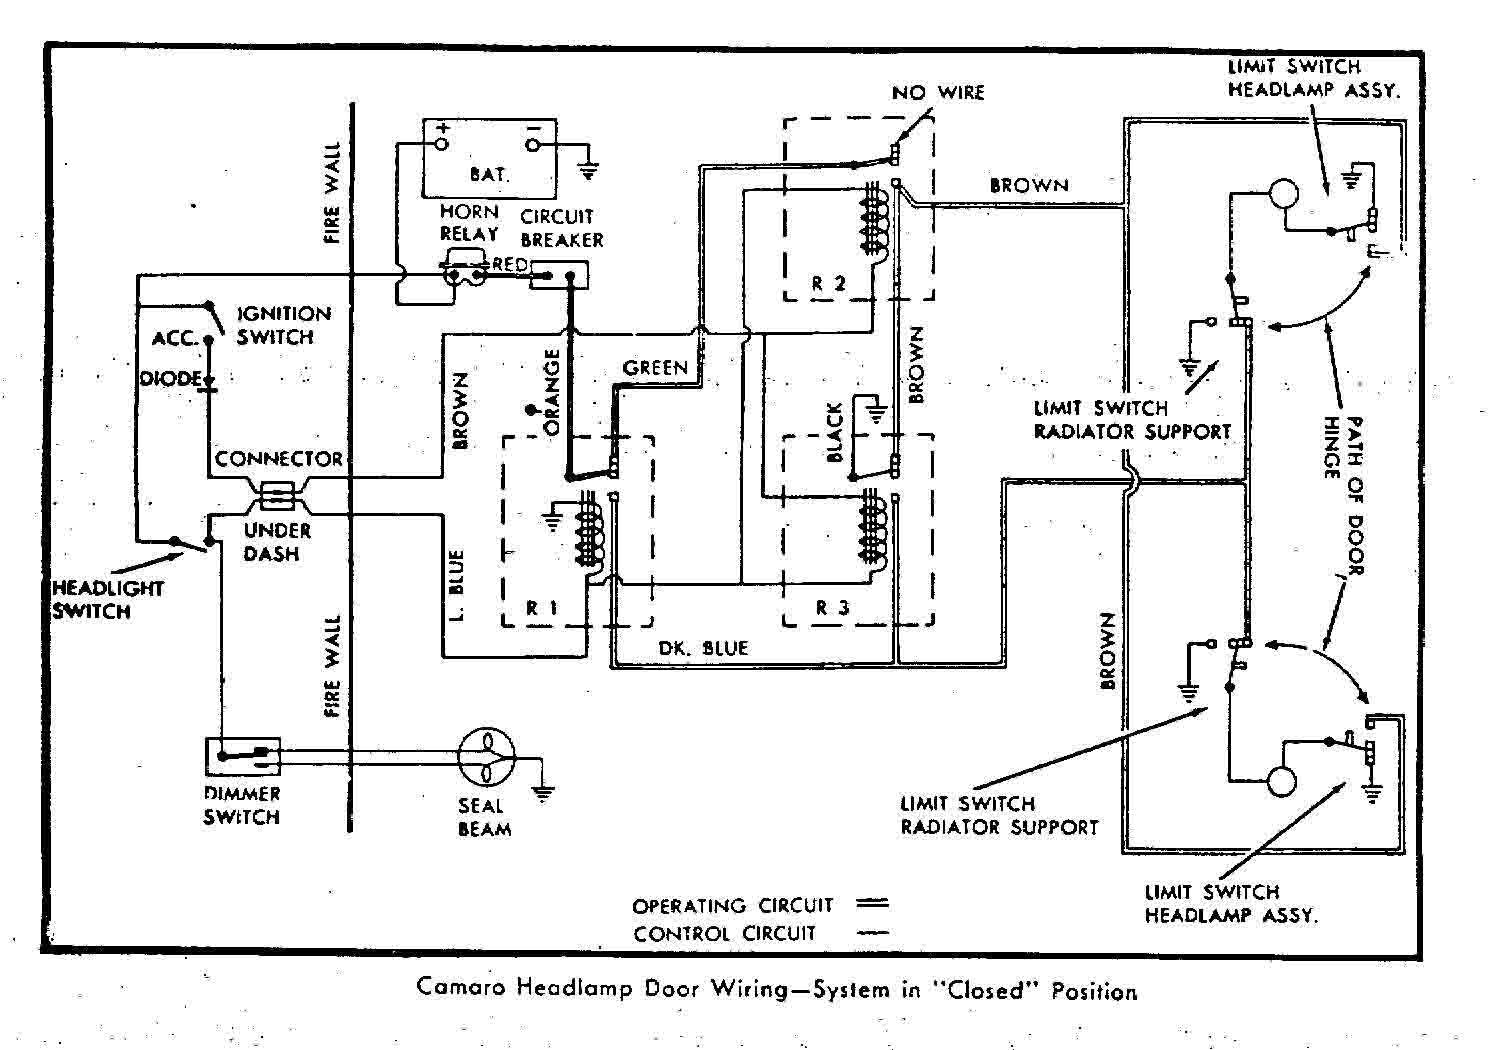 hight resolution of 1967 camaro heater wiring diagram wiring diagrams rh 60 treatchildtrauma de 1967 camaro wiring harness diagram 1967 camaro wiring harness diagram